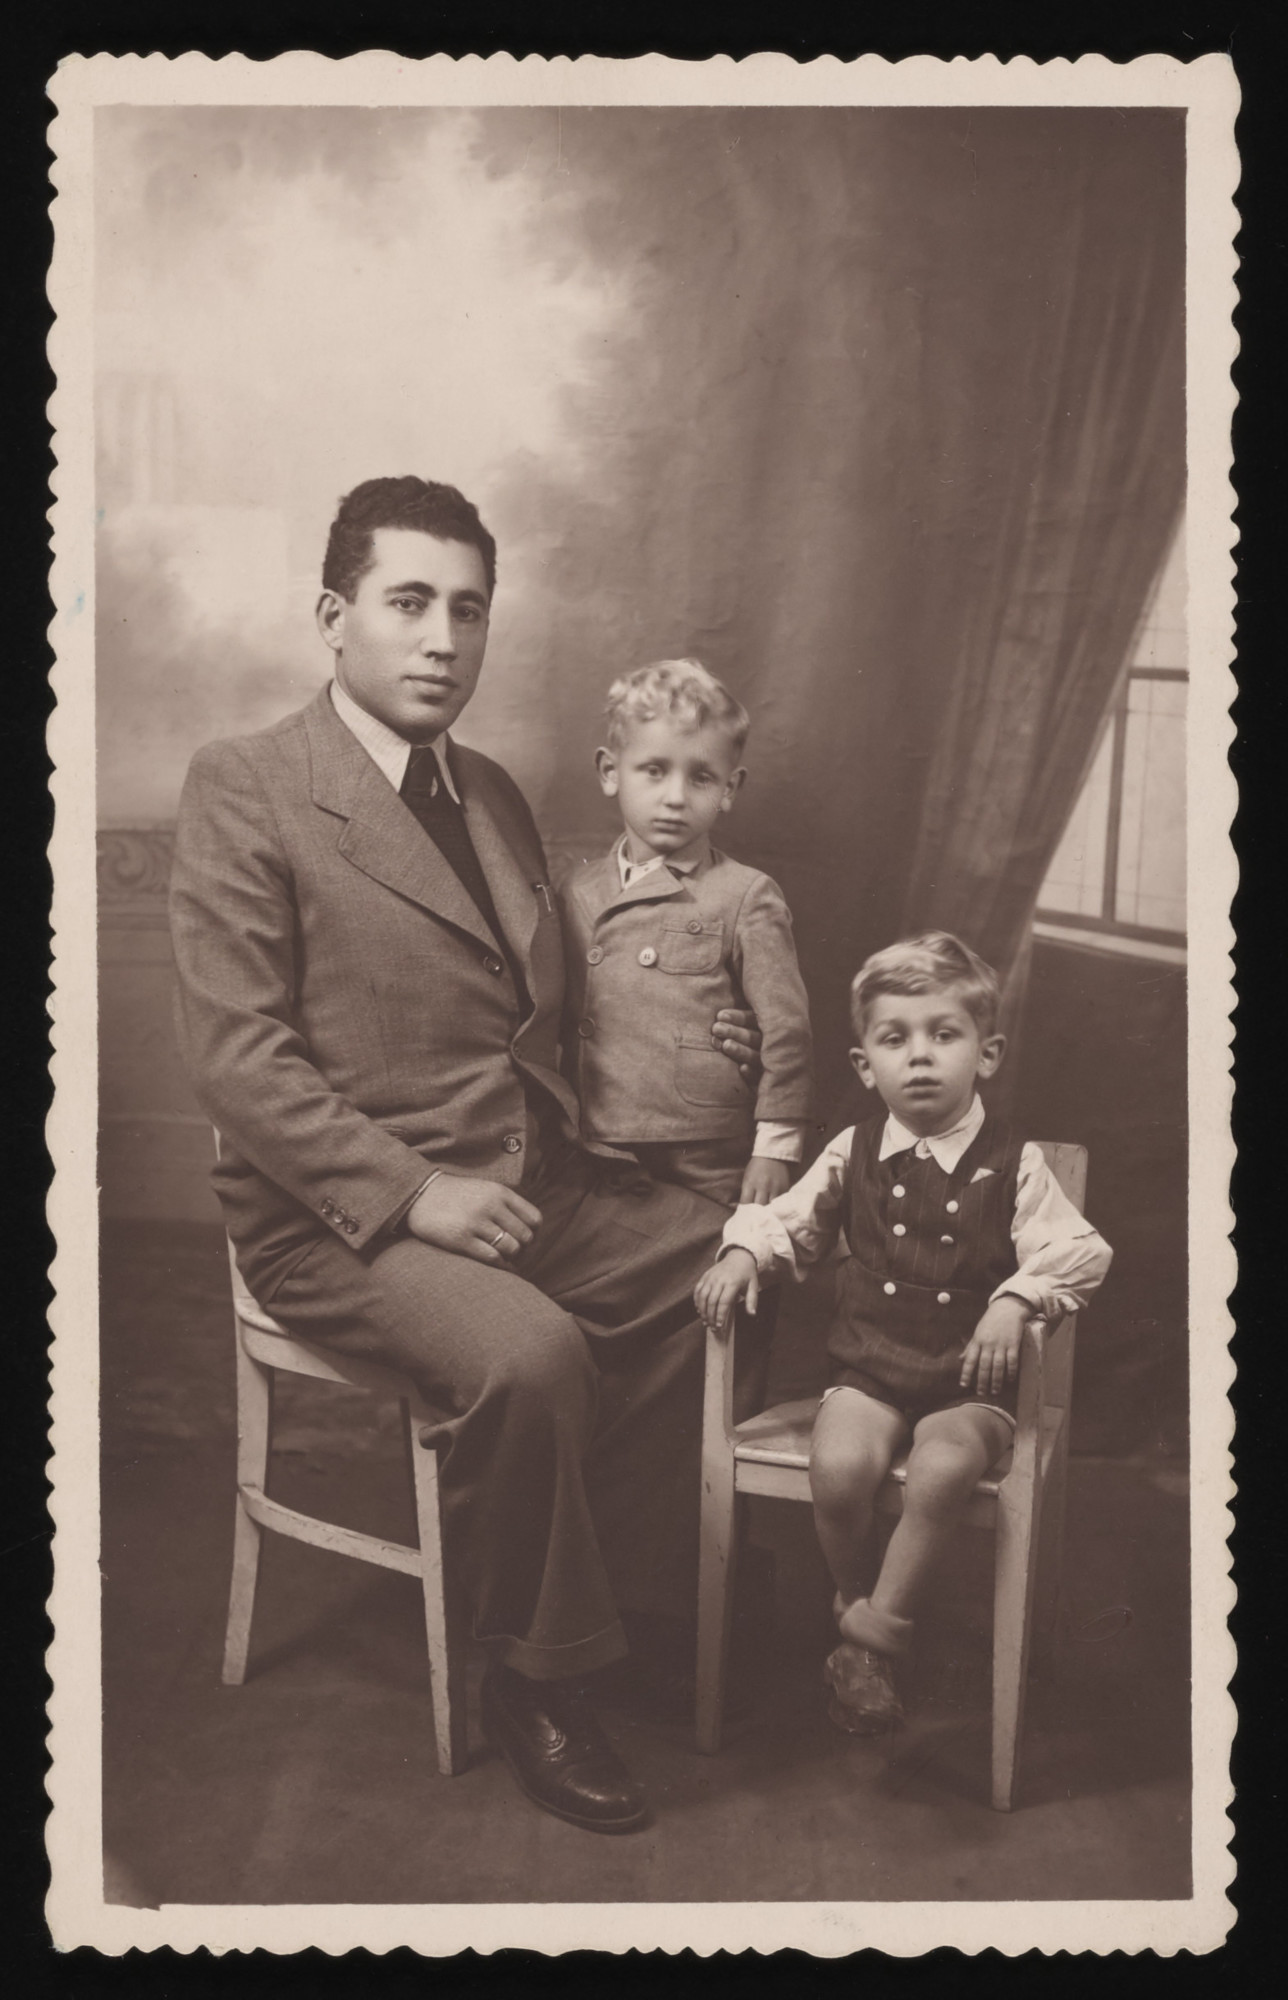 Studio portrait of Jewish rescuer Ben Zion Kalb with Itzhak and Alter Weinberg, two young orphans from Krakow that he helped smuggle into Slovakia.  The Weinberg boys then proceeded on to Hungary and were saved on the Kasztner Transport.